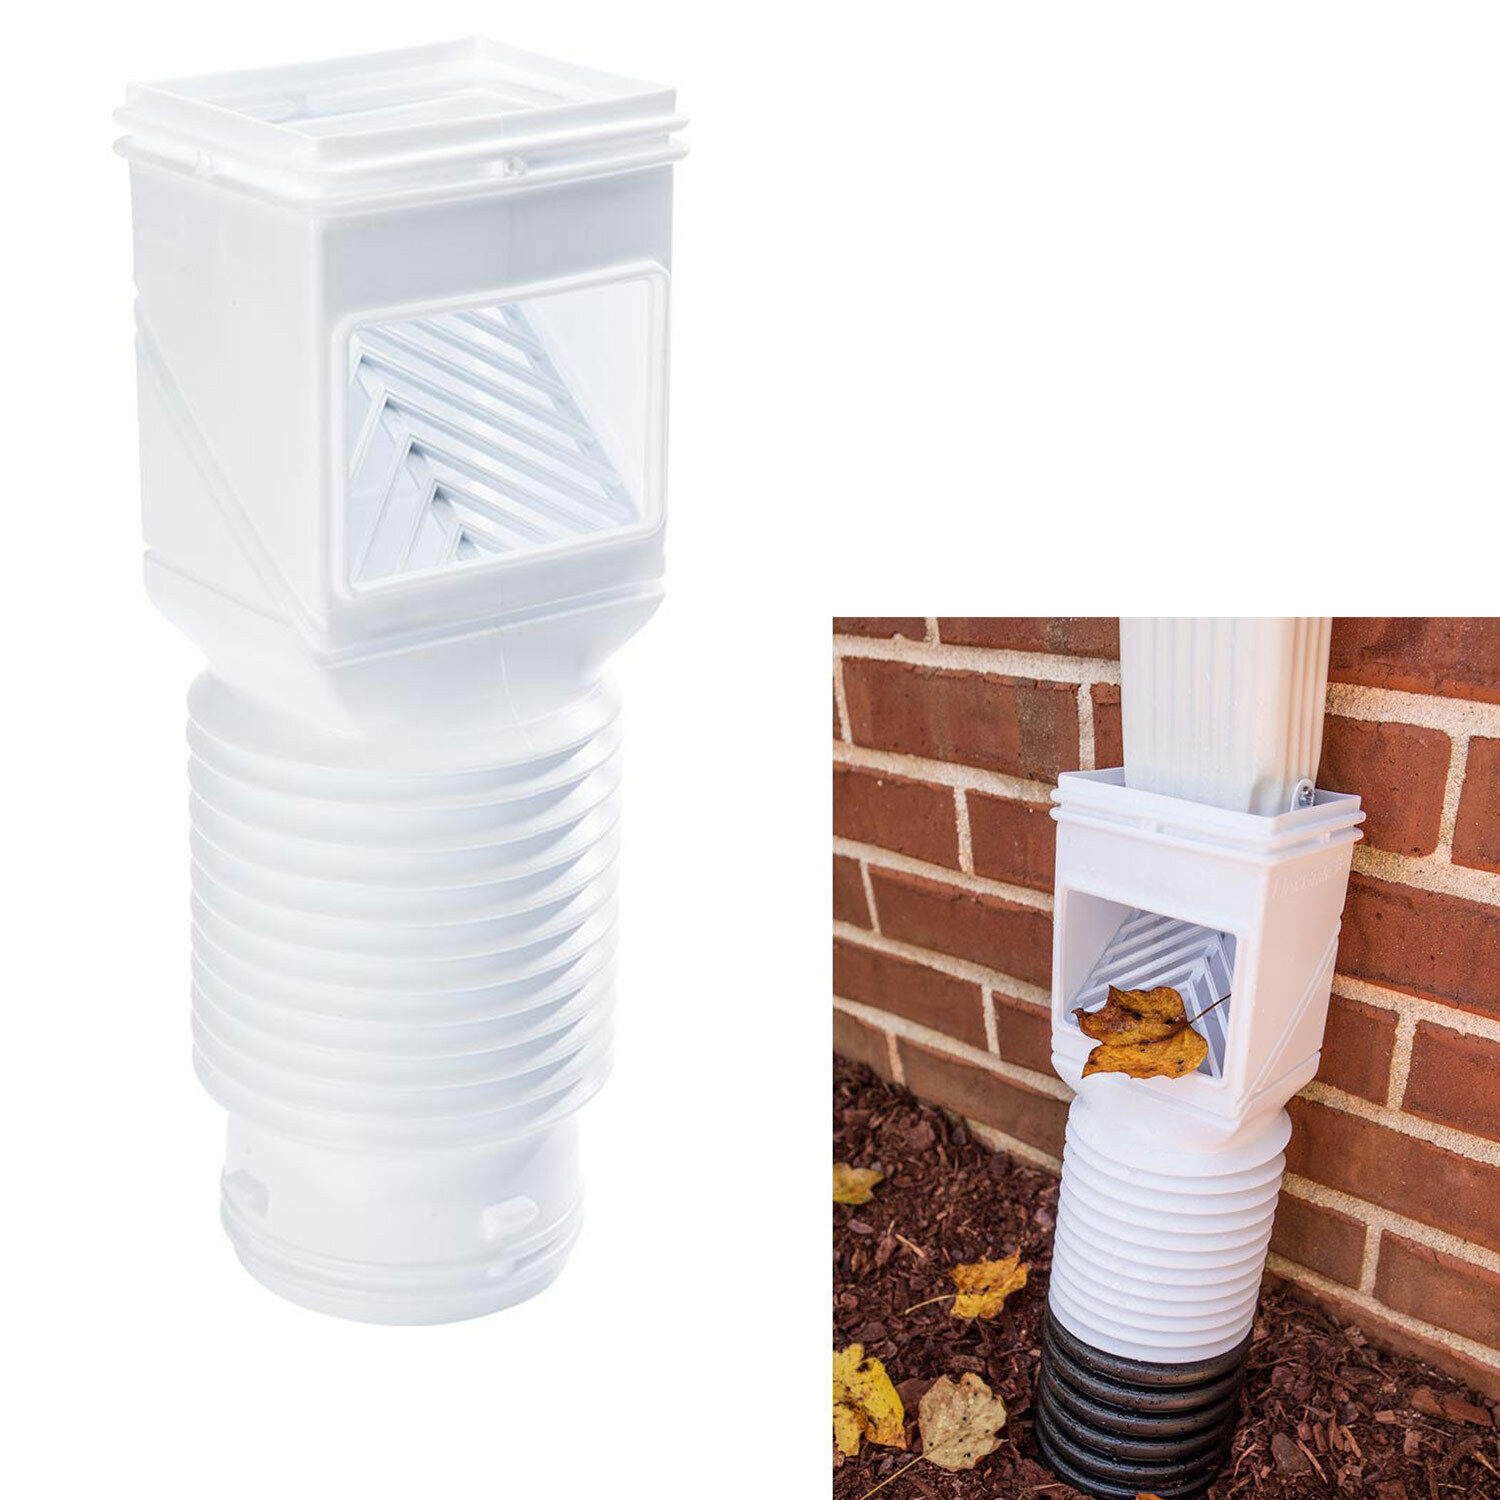 downspout-debris-filter-strainer-gutter-leaf-guard-residential-connector-white